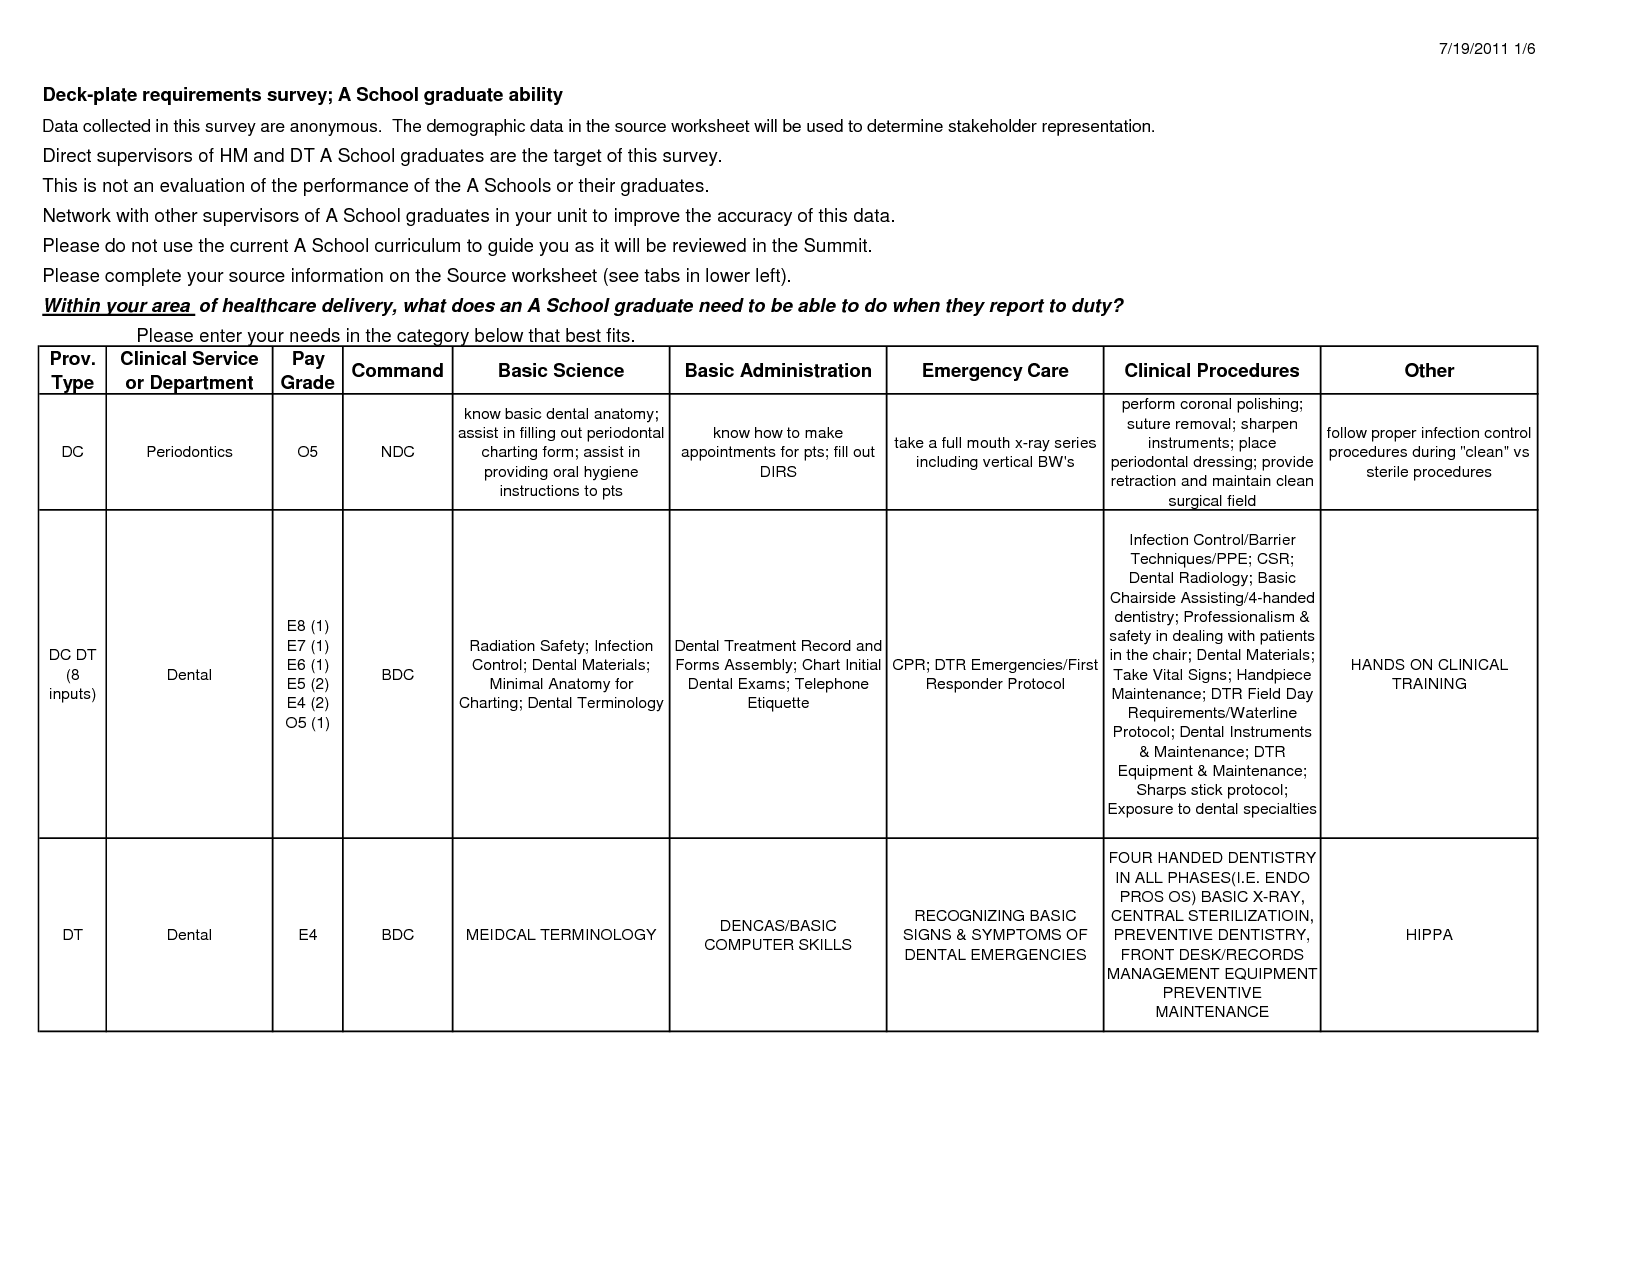 16 Best Images Of Risk Management Plan Worksheet